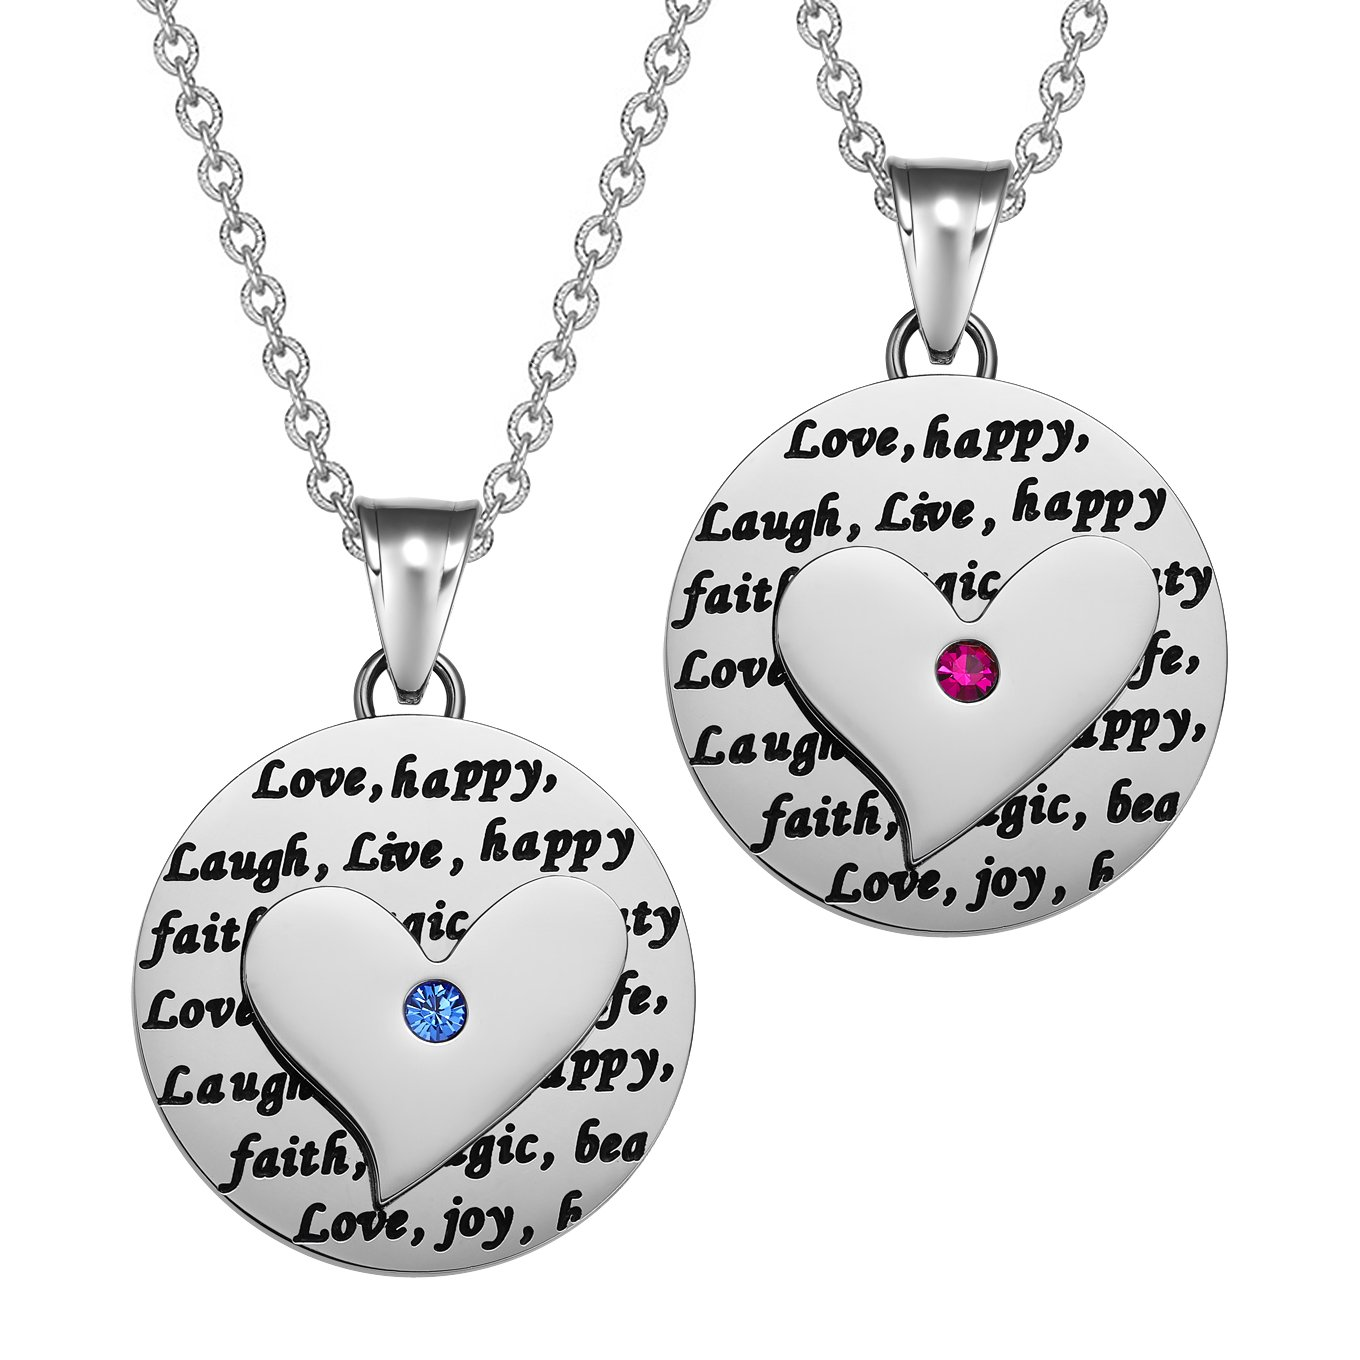 Heart Inspirational Medallions Live Laugh Love Couples or Best Friends Amulet Fuchsia Pink Blue Necklaces